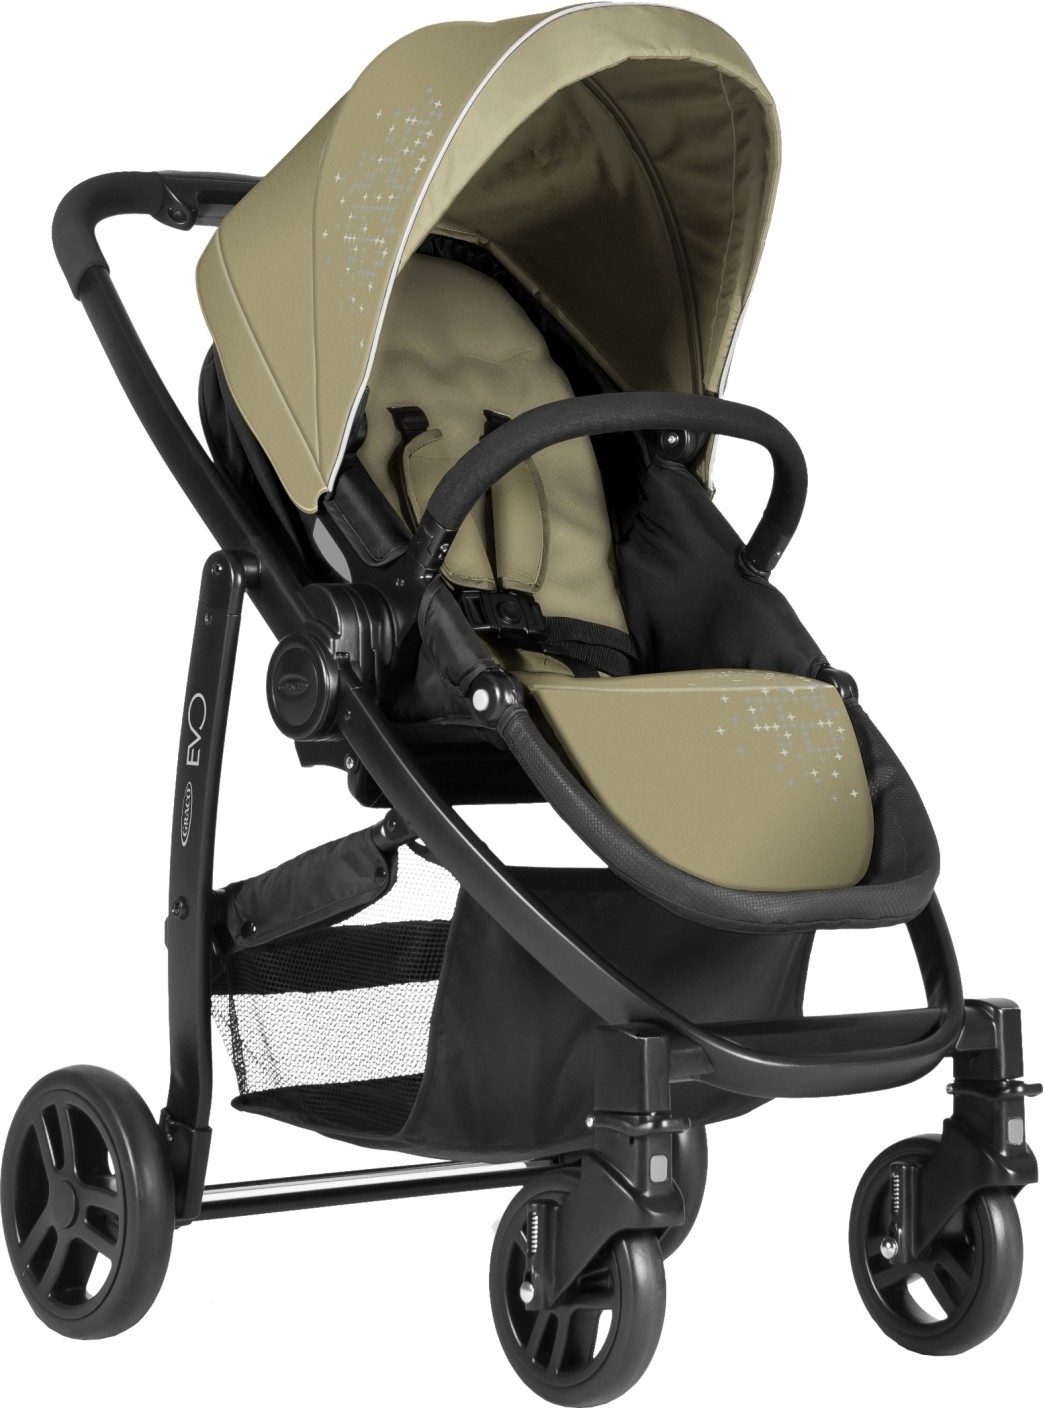 Graco Evo Travel System Sand Buy 3 Position Reclining